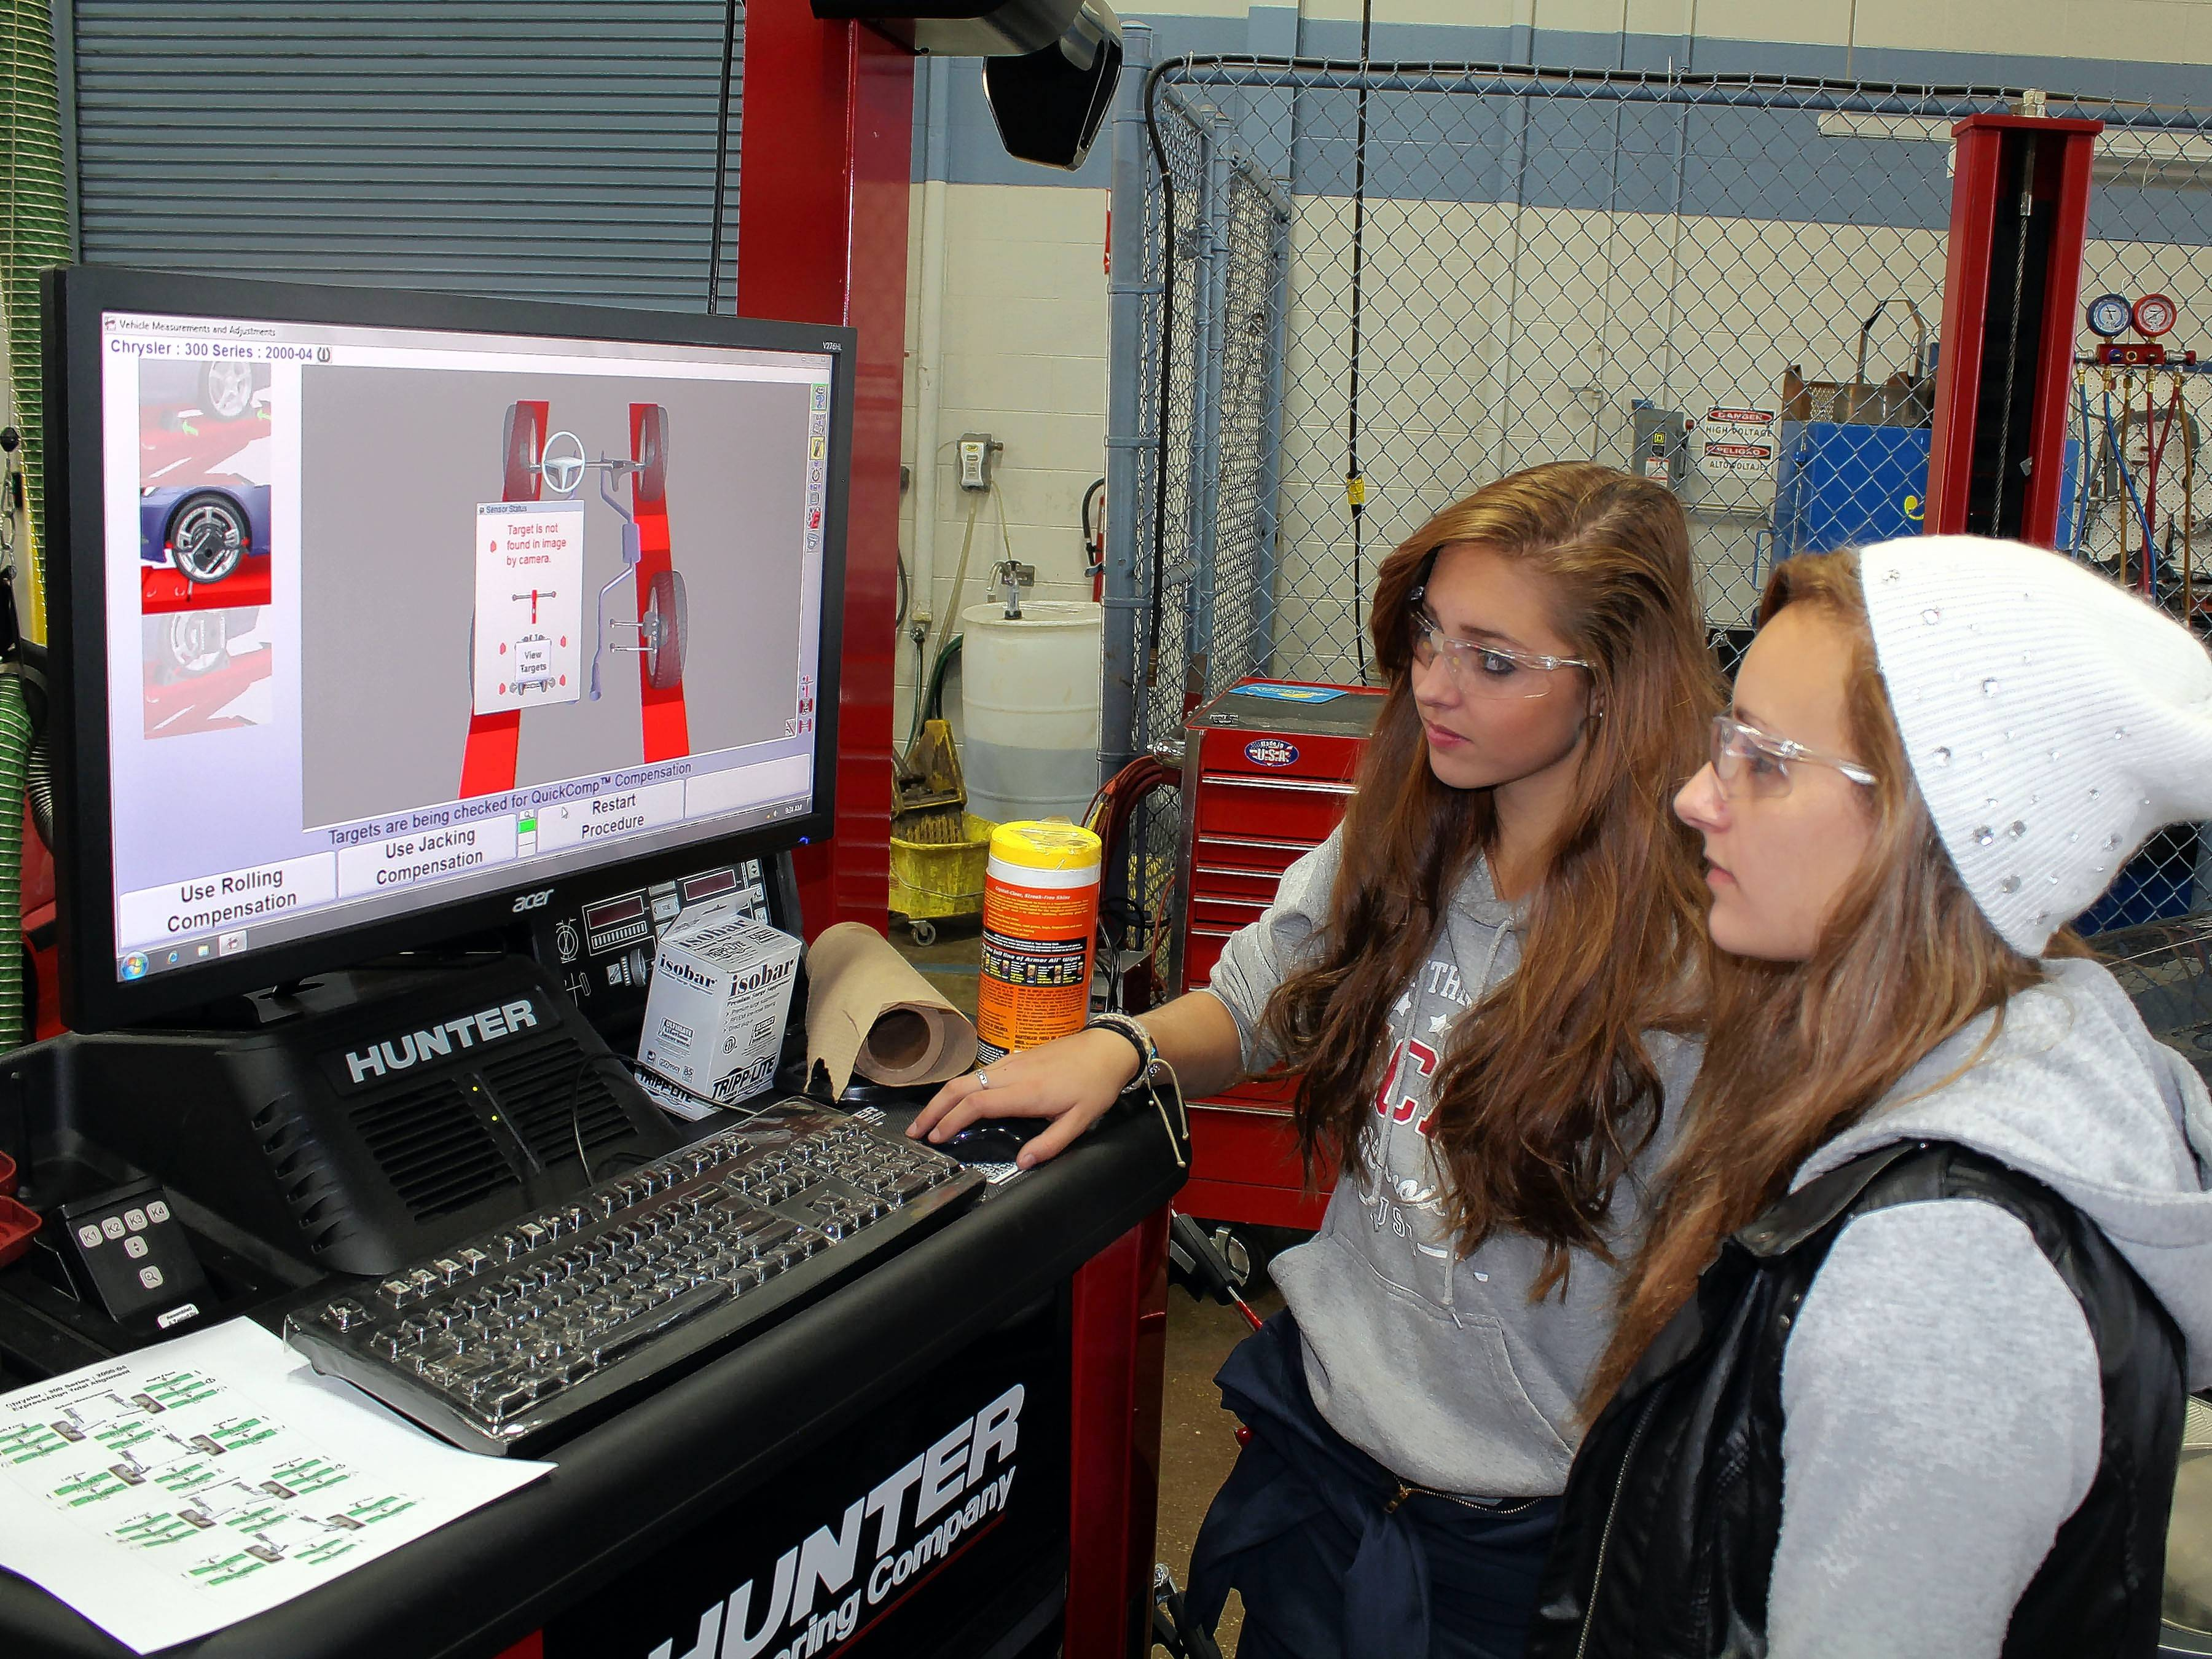 High school seniors Lauren Mirabella, left, and Cayla Fuechsl use advanced diagnostic technology that employs cameras and lasers to help technicians do alignments. The two are among eight female auto tech students enrolled this year at Technology Center of DuPage, an elective part their high school curriculum.